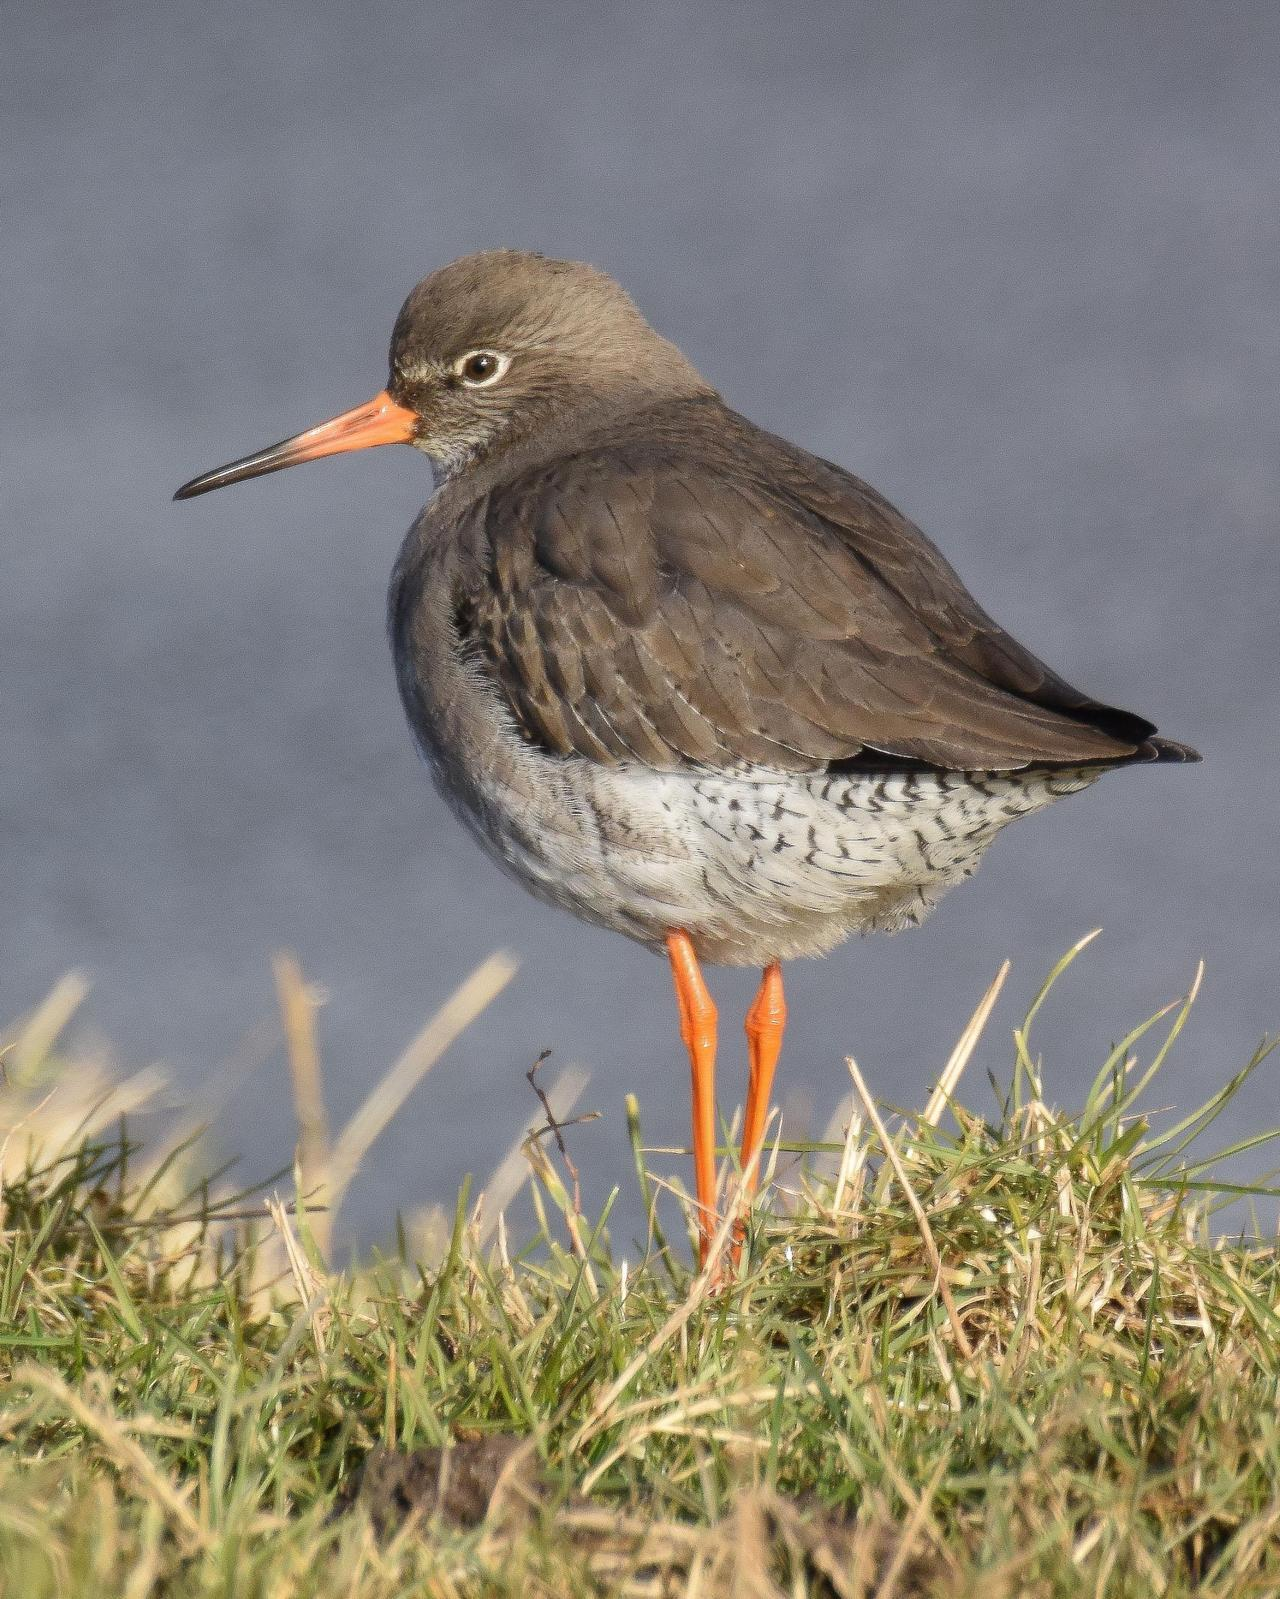 Common Redshank Photo by Steve Percival